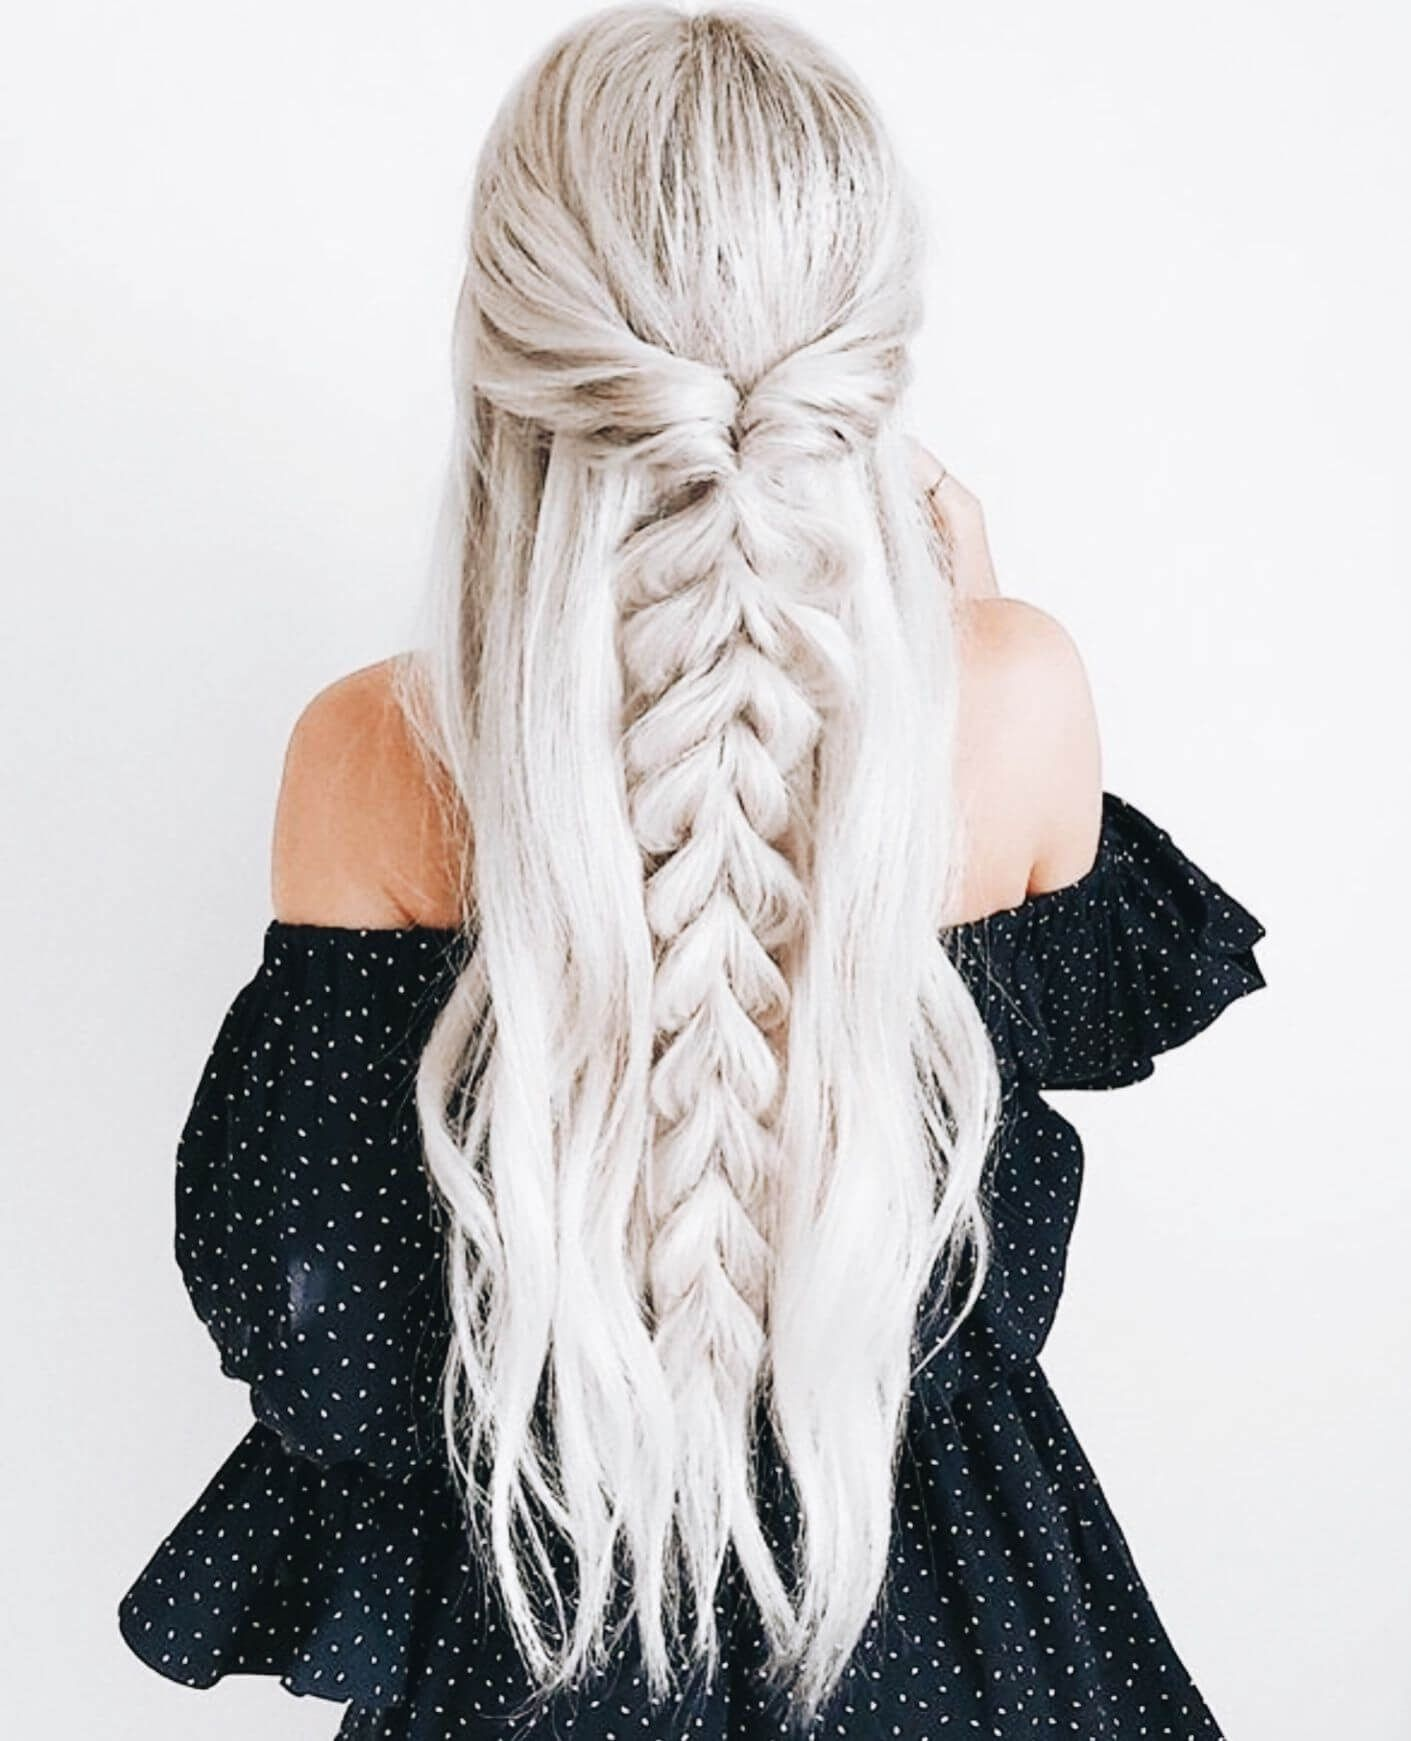 unforgettable ash blonde hairstyles to inspire you